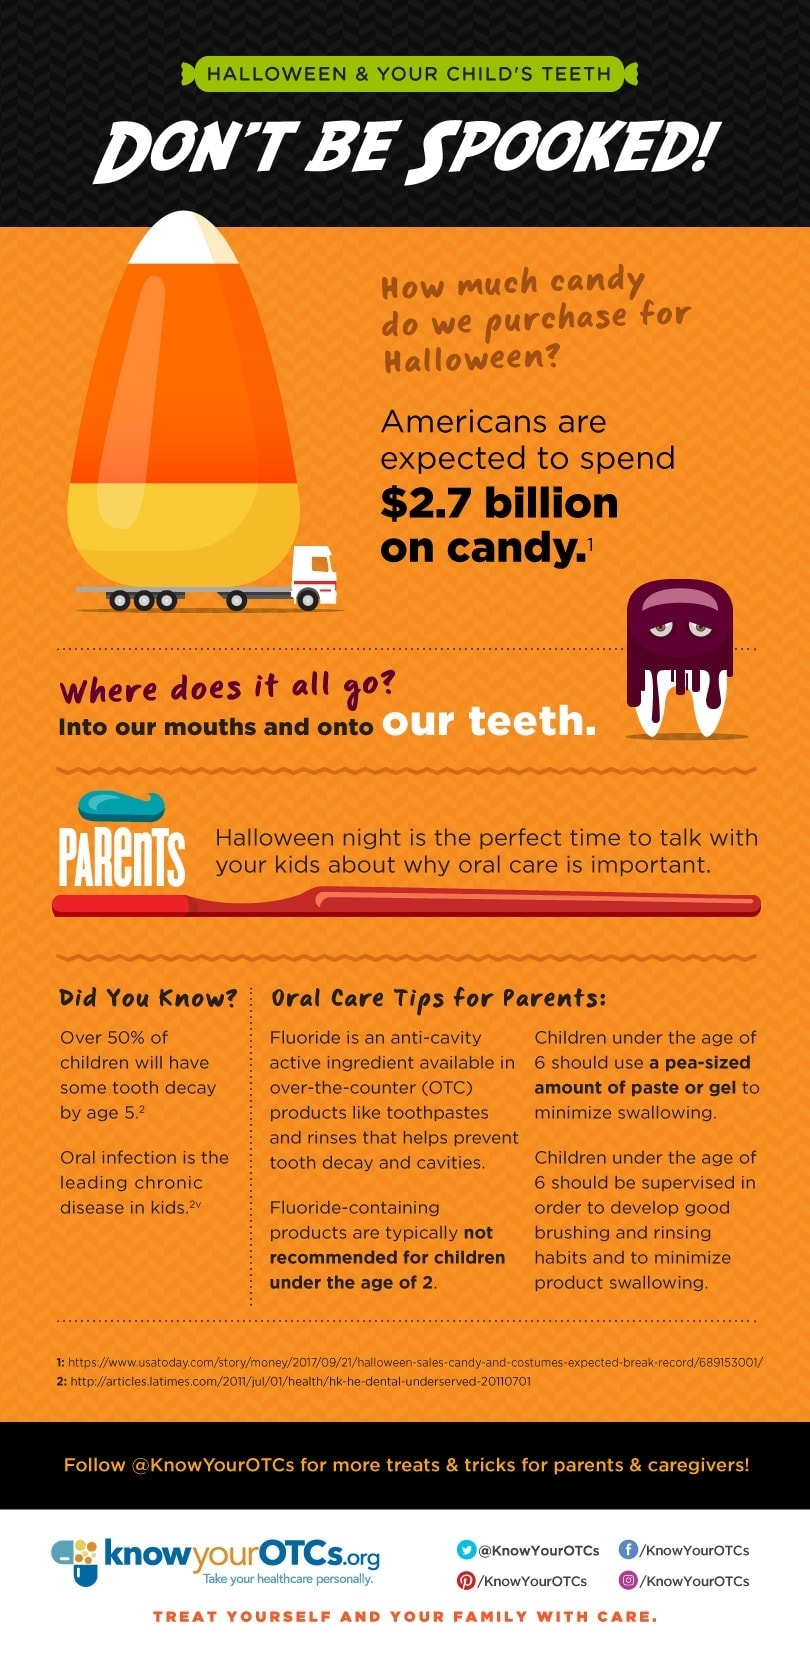 Halloween & Your Child's Teeth